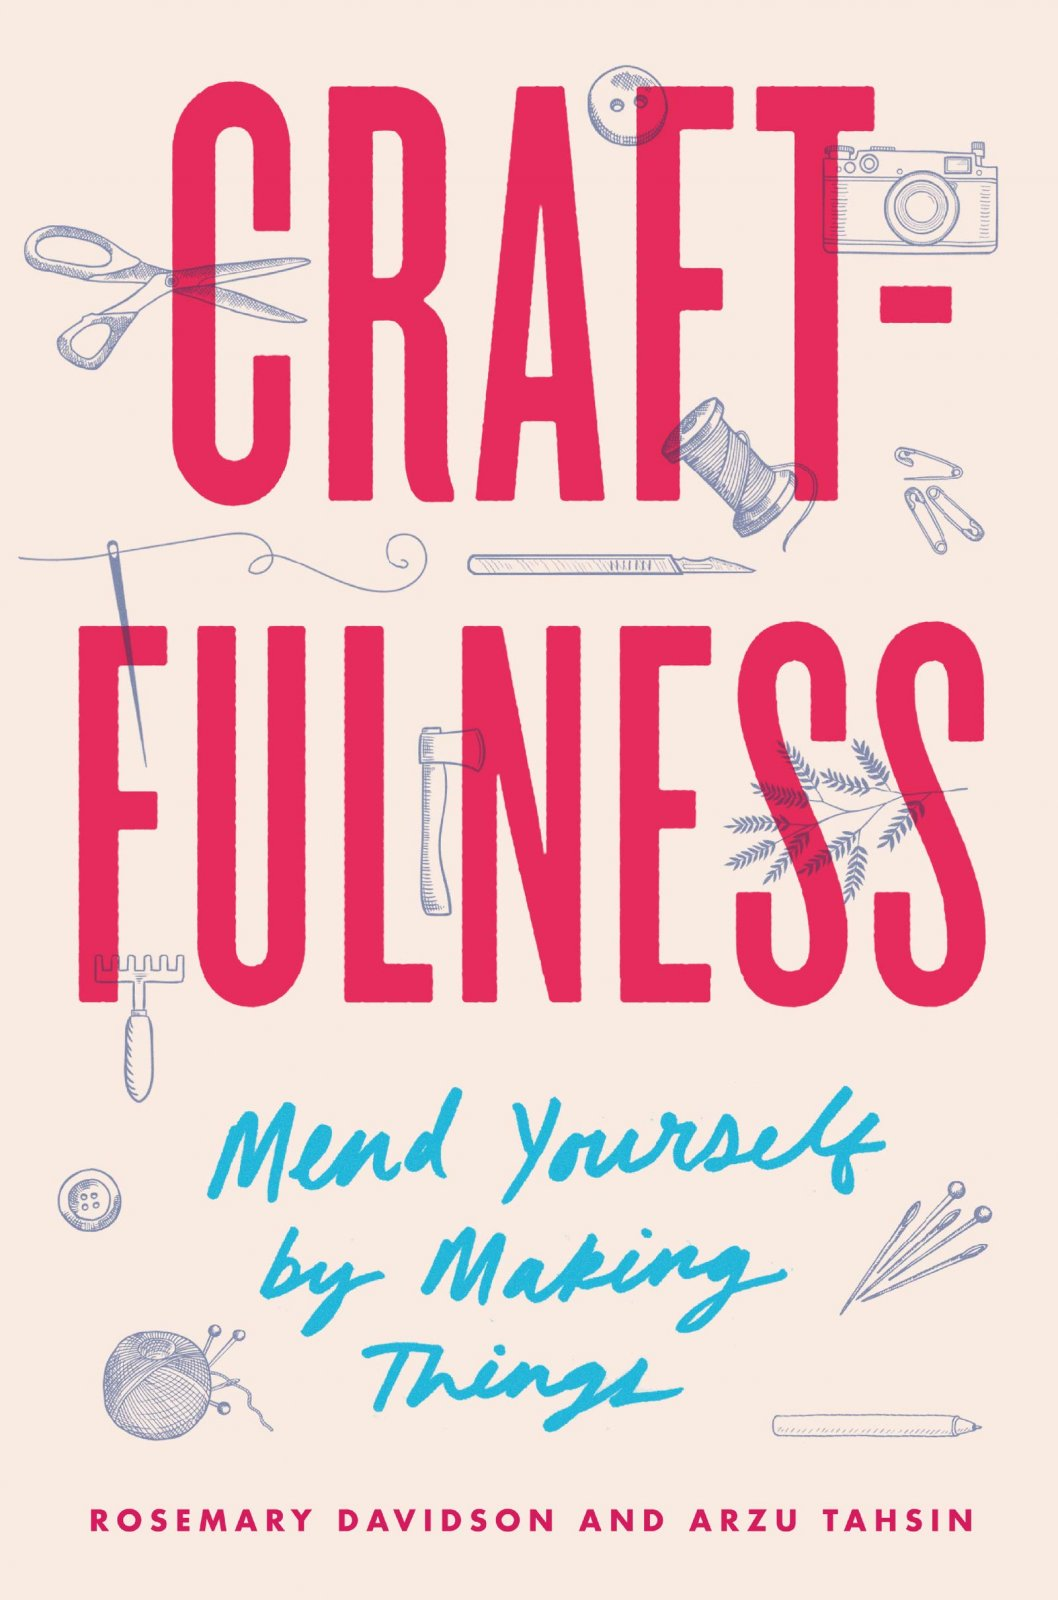 Craft-Fulness mend yourself by making things